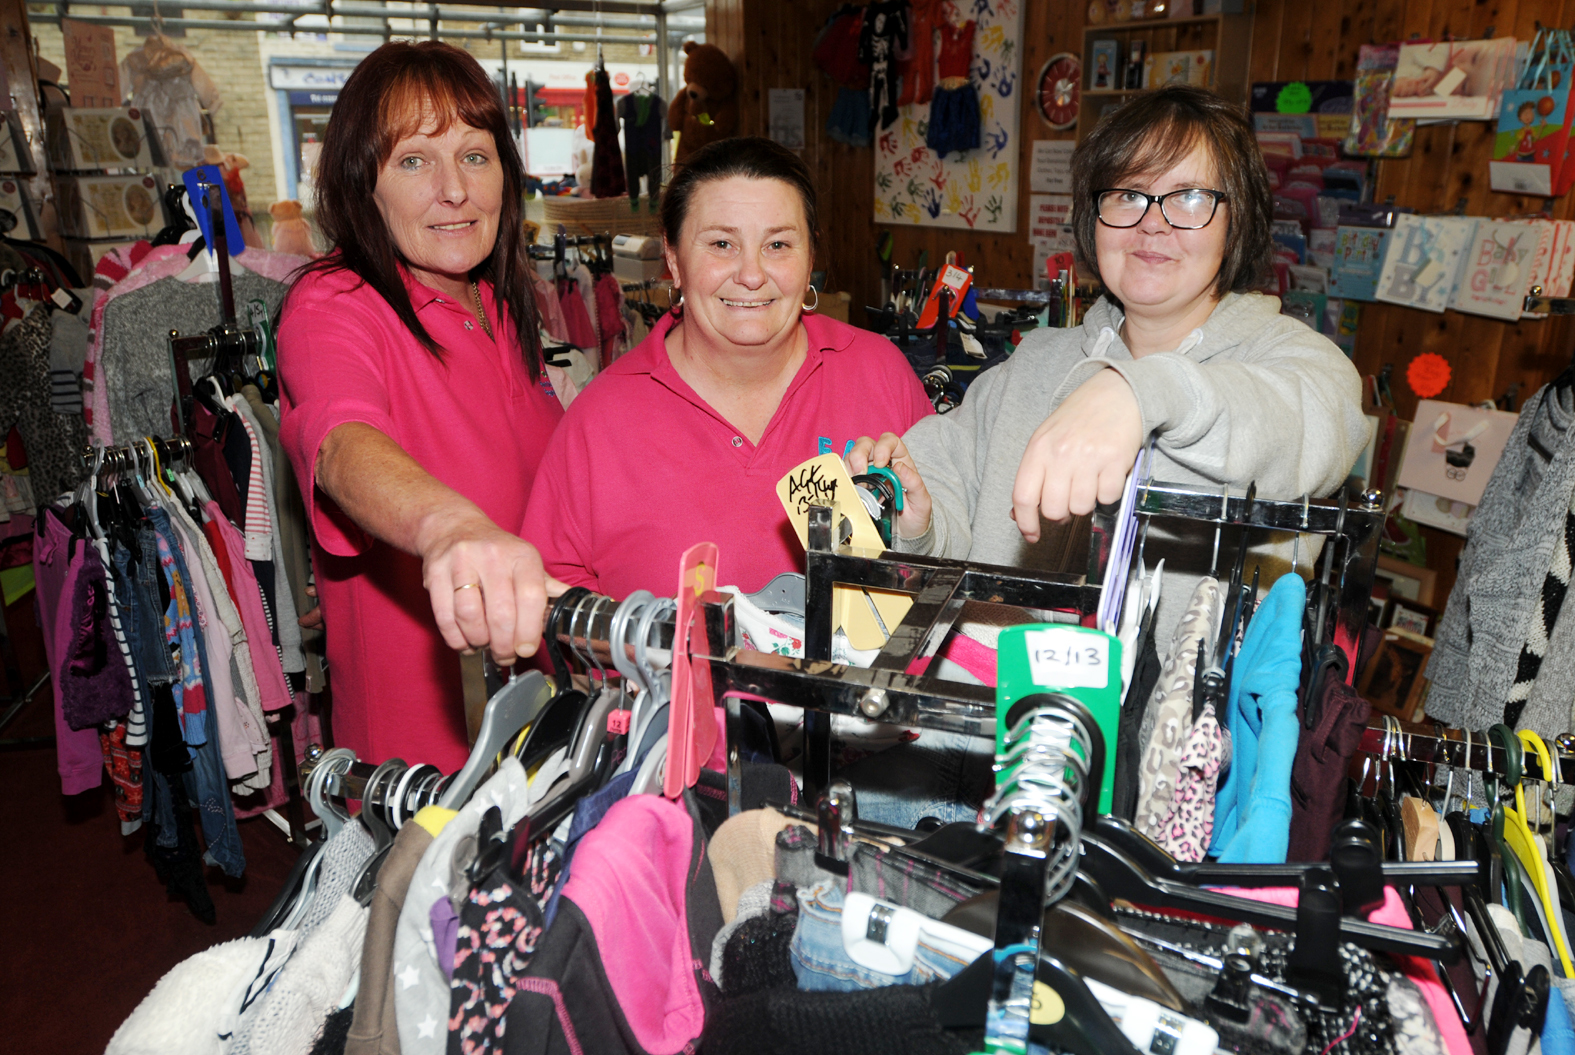 BARGAINS: From left, shop staff Donna Brooks and Janice Roby with volunteer Jane Smith at the shop inside the Families and Babies Health and Wellbeing Centre building